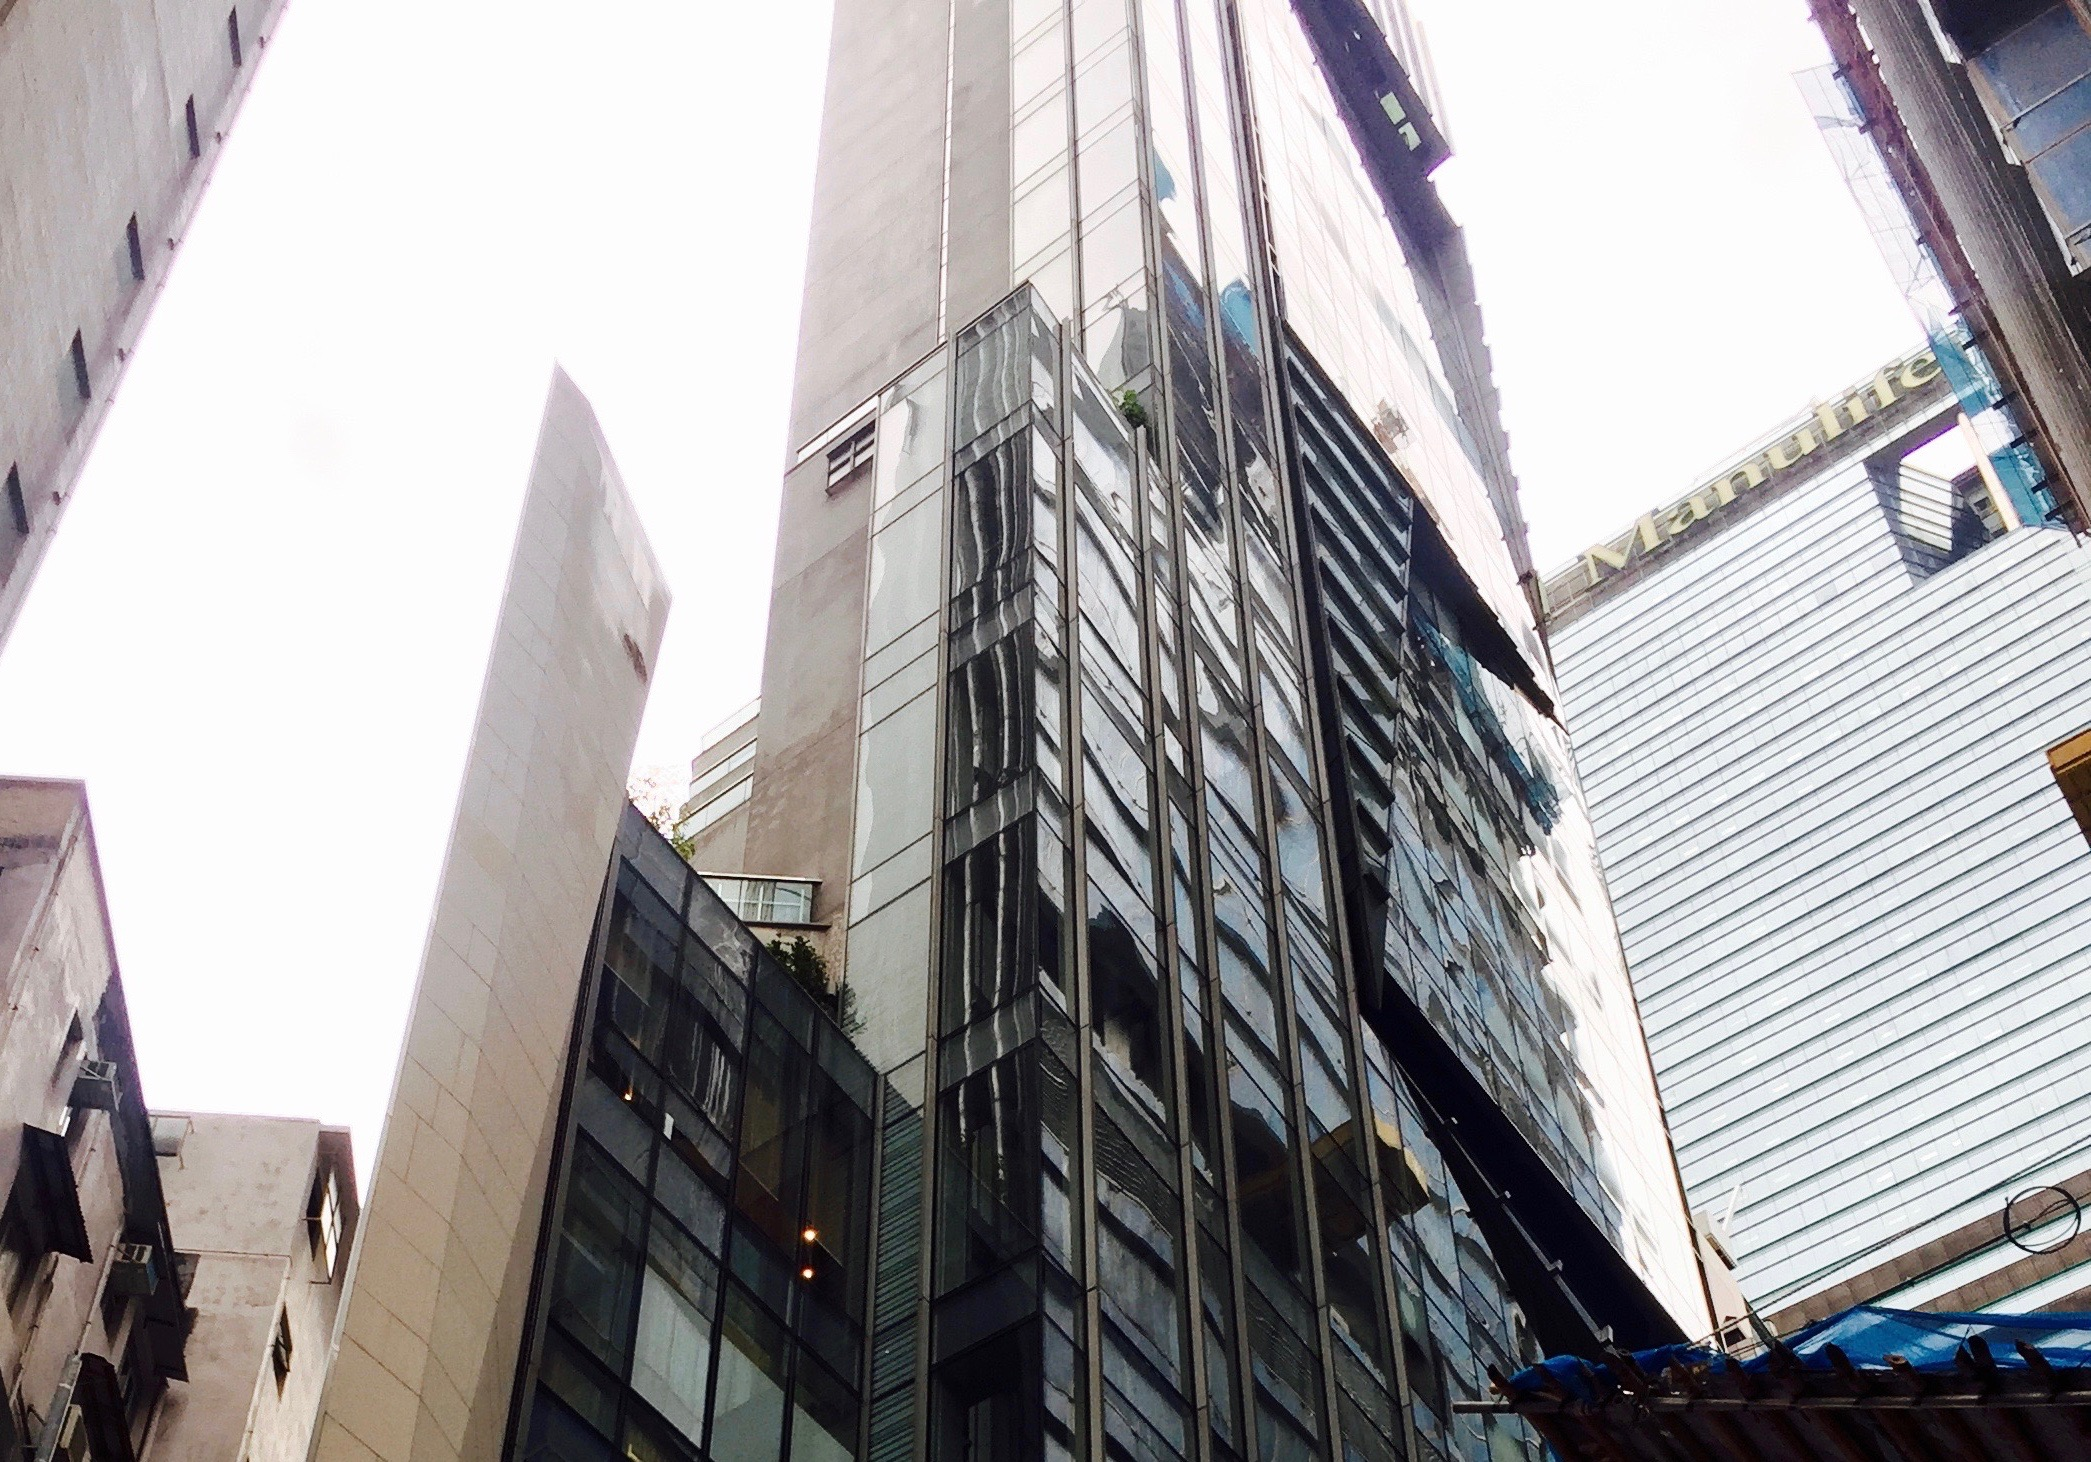 Causeway Bay hot spot for upstairs restaurants bars cafes